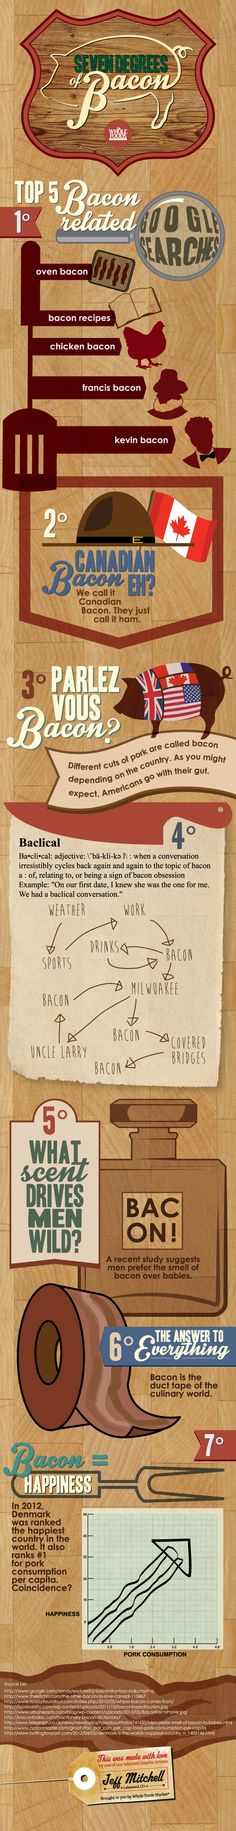 Seven degrees of bacon! #holiday #infographic #bacon